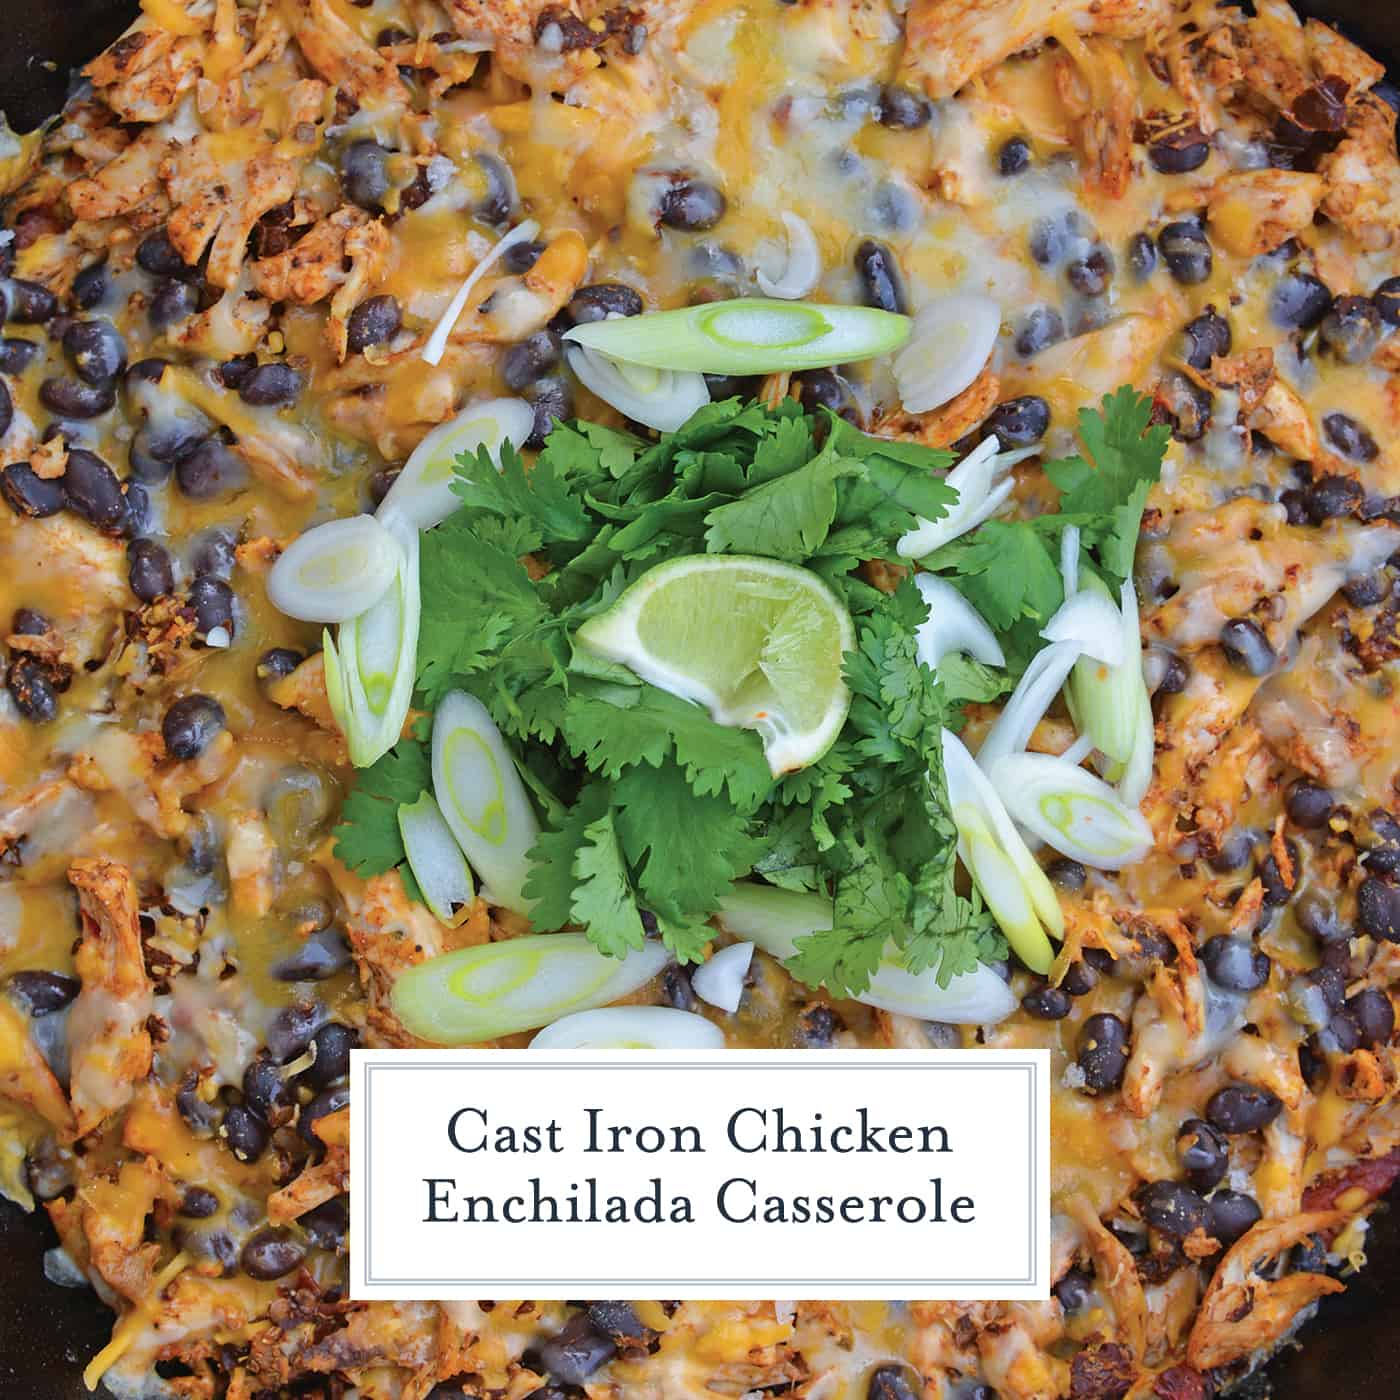 This Chicken Enchilada Casserole Recipe is a delicious casserole recipe loaded with a cornbread crust, chicken, beans, and cheese, all made in a cast iron skillet! #chickenenchiladacasserole #castironskilletrecipes www.savoryexperiments.com